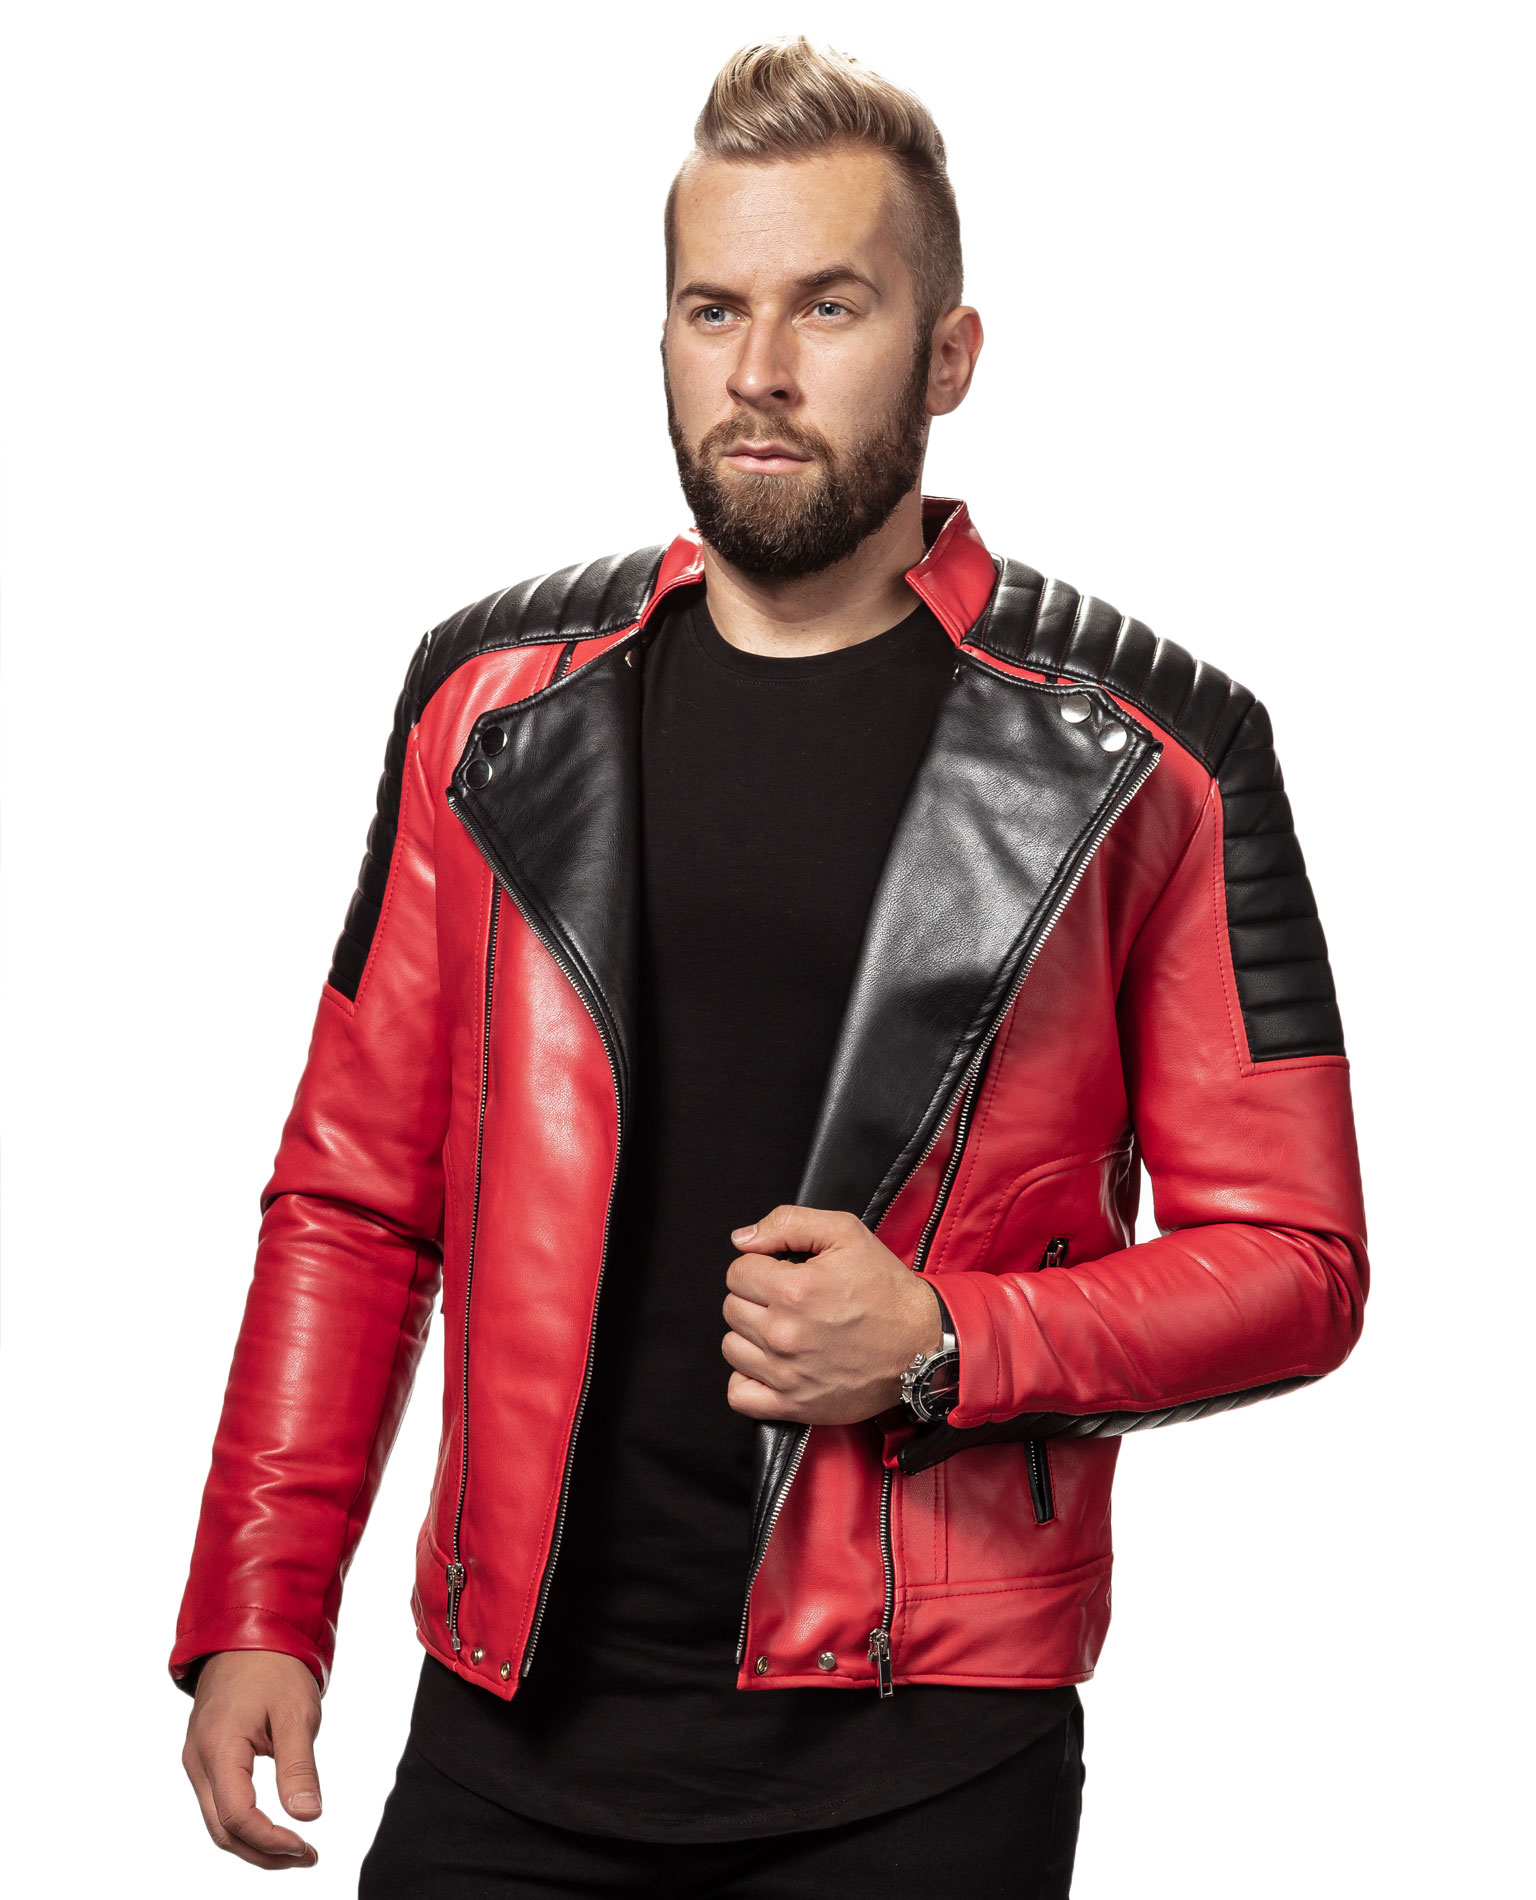 Red Faux Biker Jacket Jerone 9639 - Leather Jackets - Jerone.com 928cf081d4